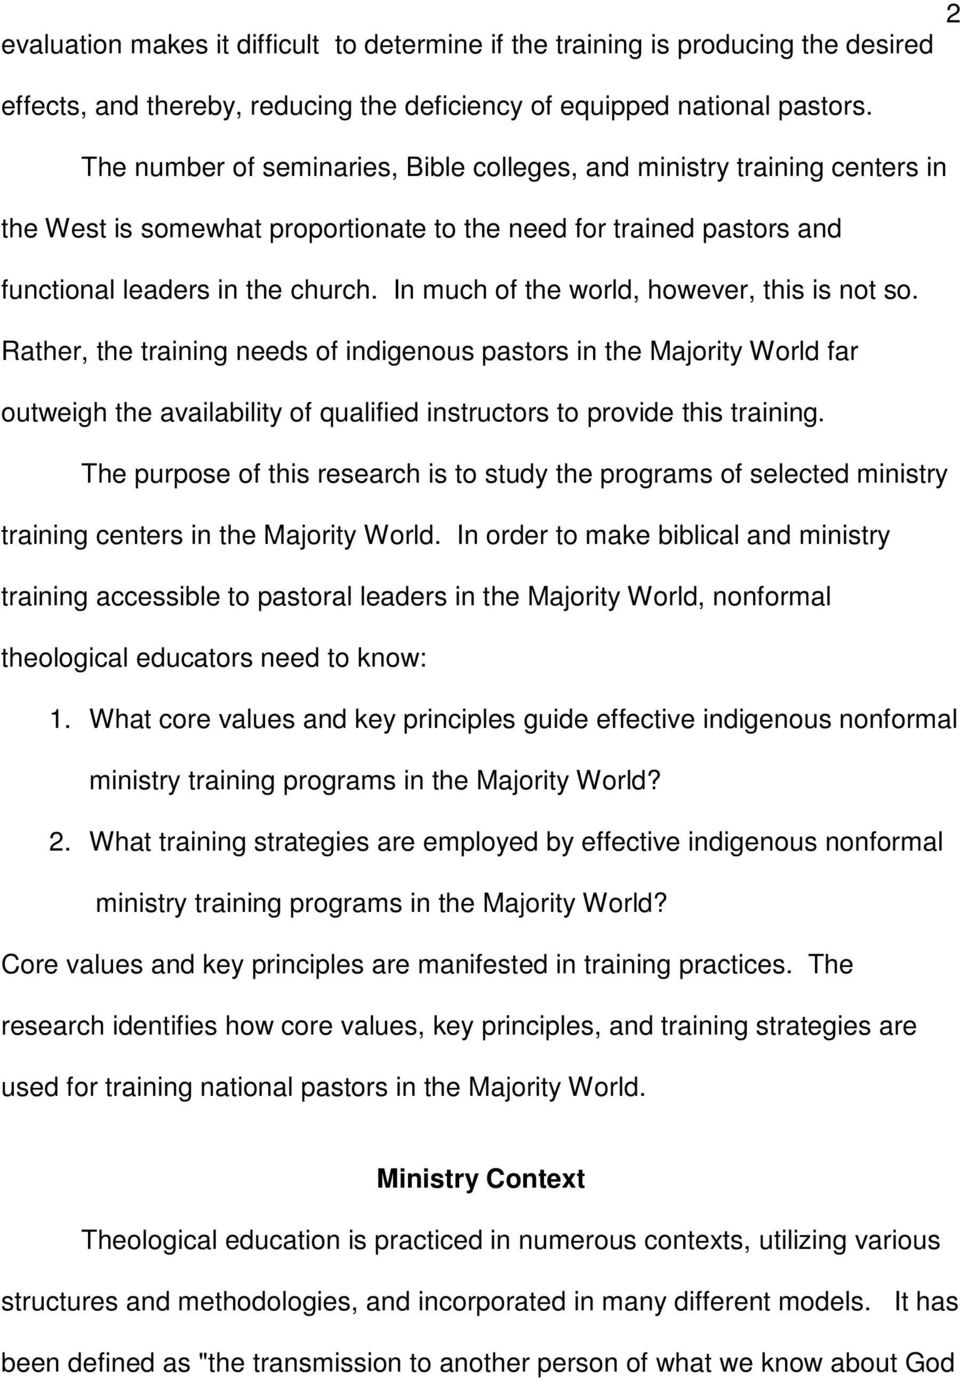 In much of the world, however, this is not so. Rather, the training needs of indigenous pastors in the Majority World far outweigh the availability of qualified instructors to provide this training.